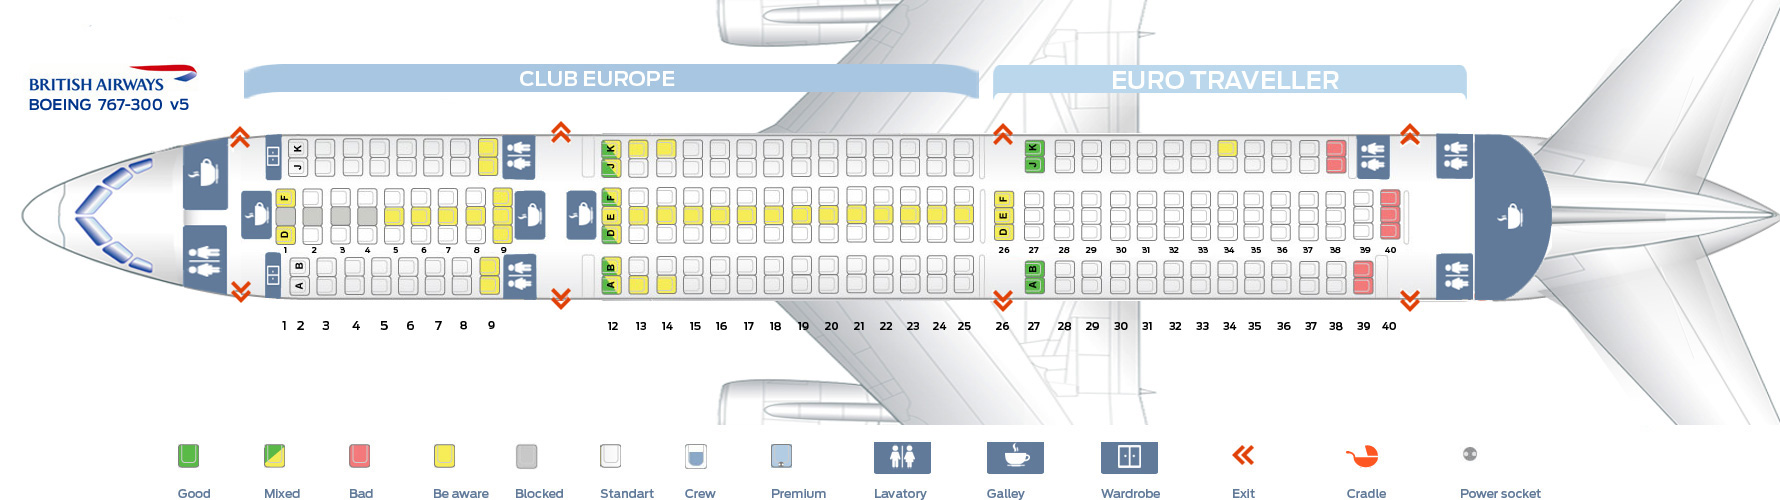 Seat_map_British_Airways_Boeing-767_300_v5